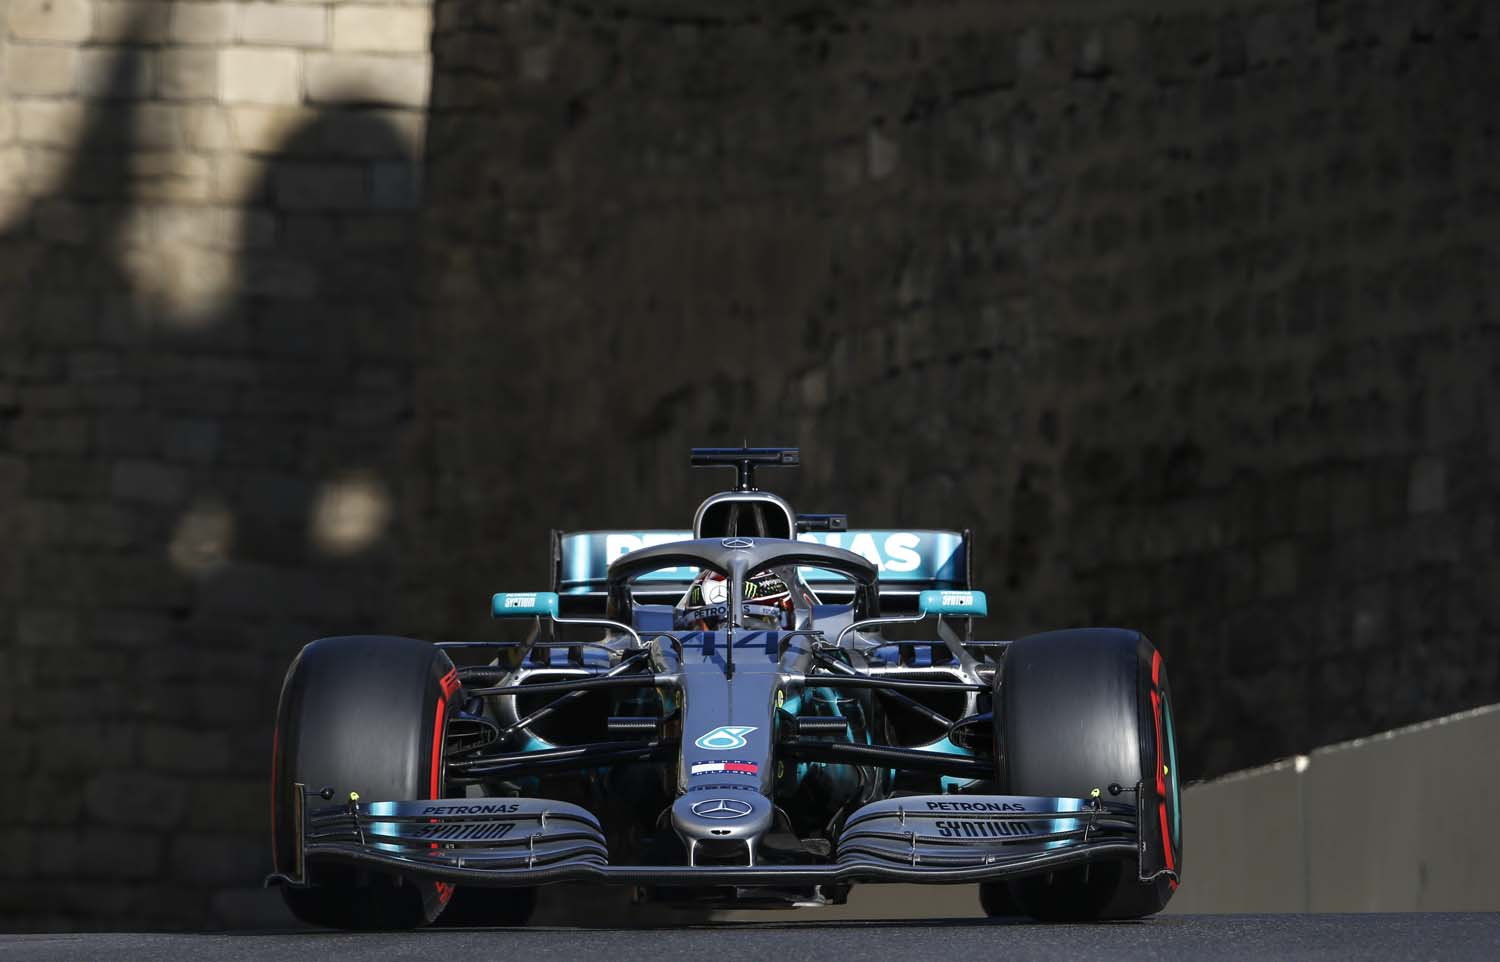 2019 Azerbaijan Grand Prix, Saturday - Wolfgang Wilhelm